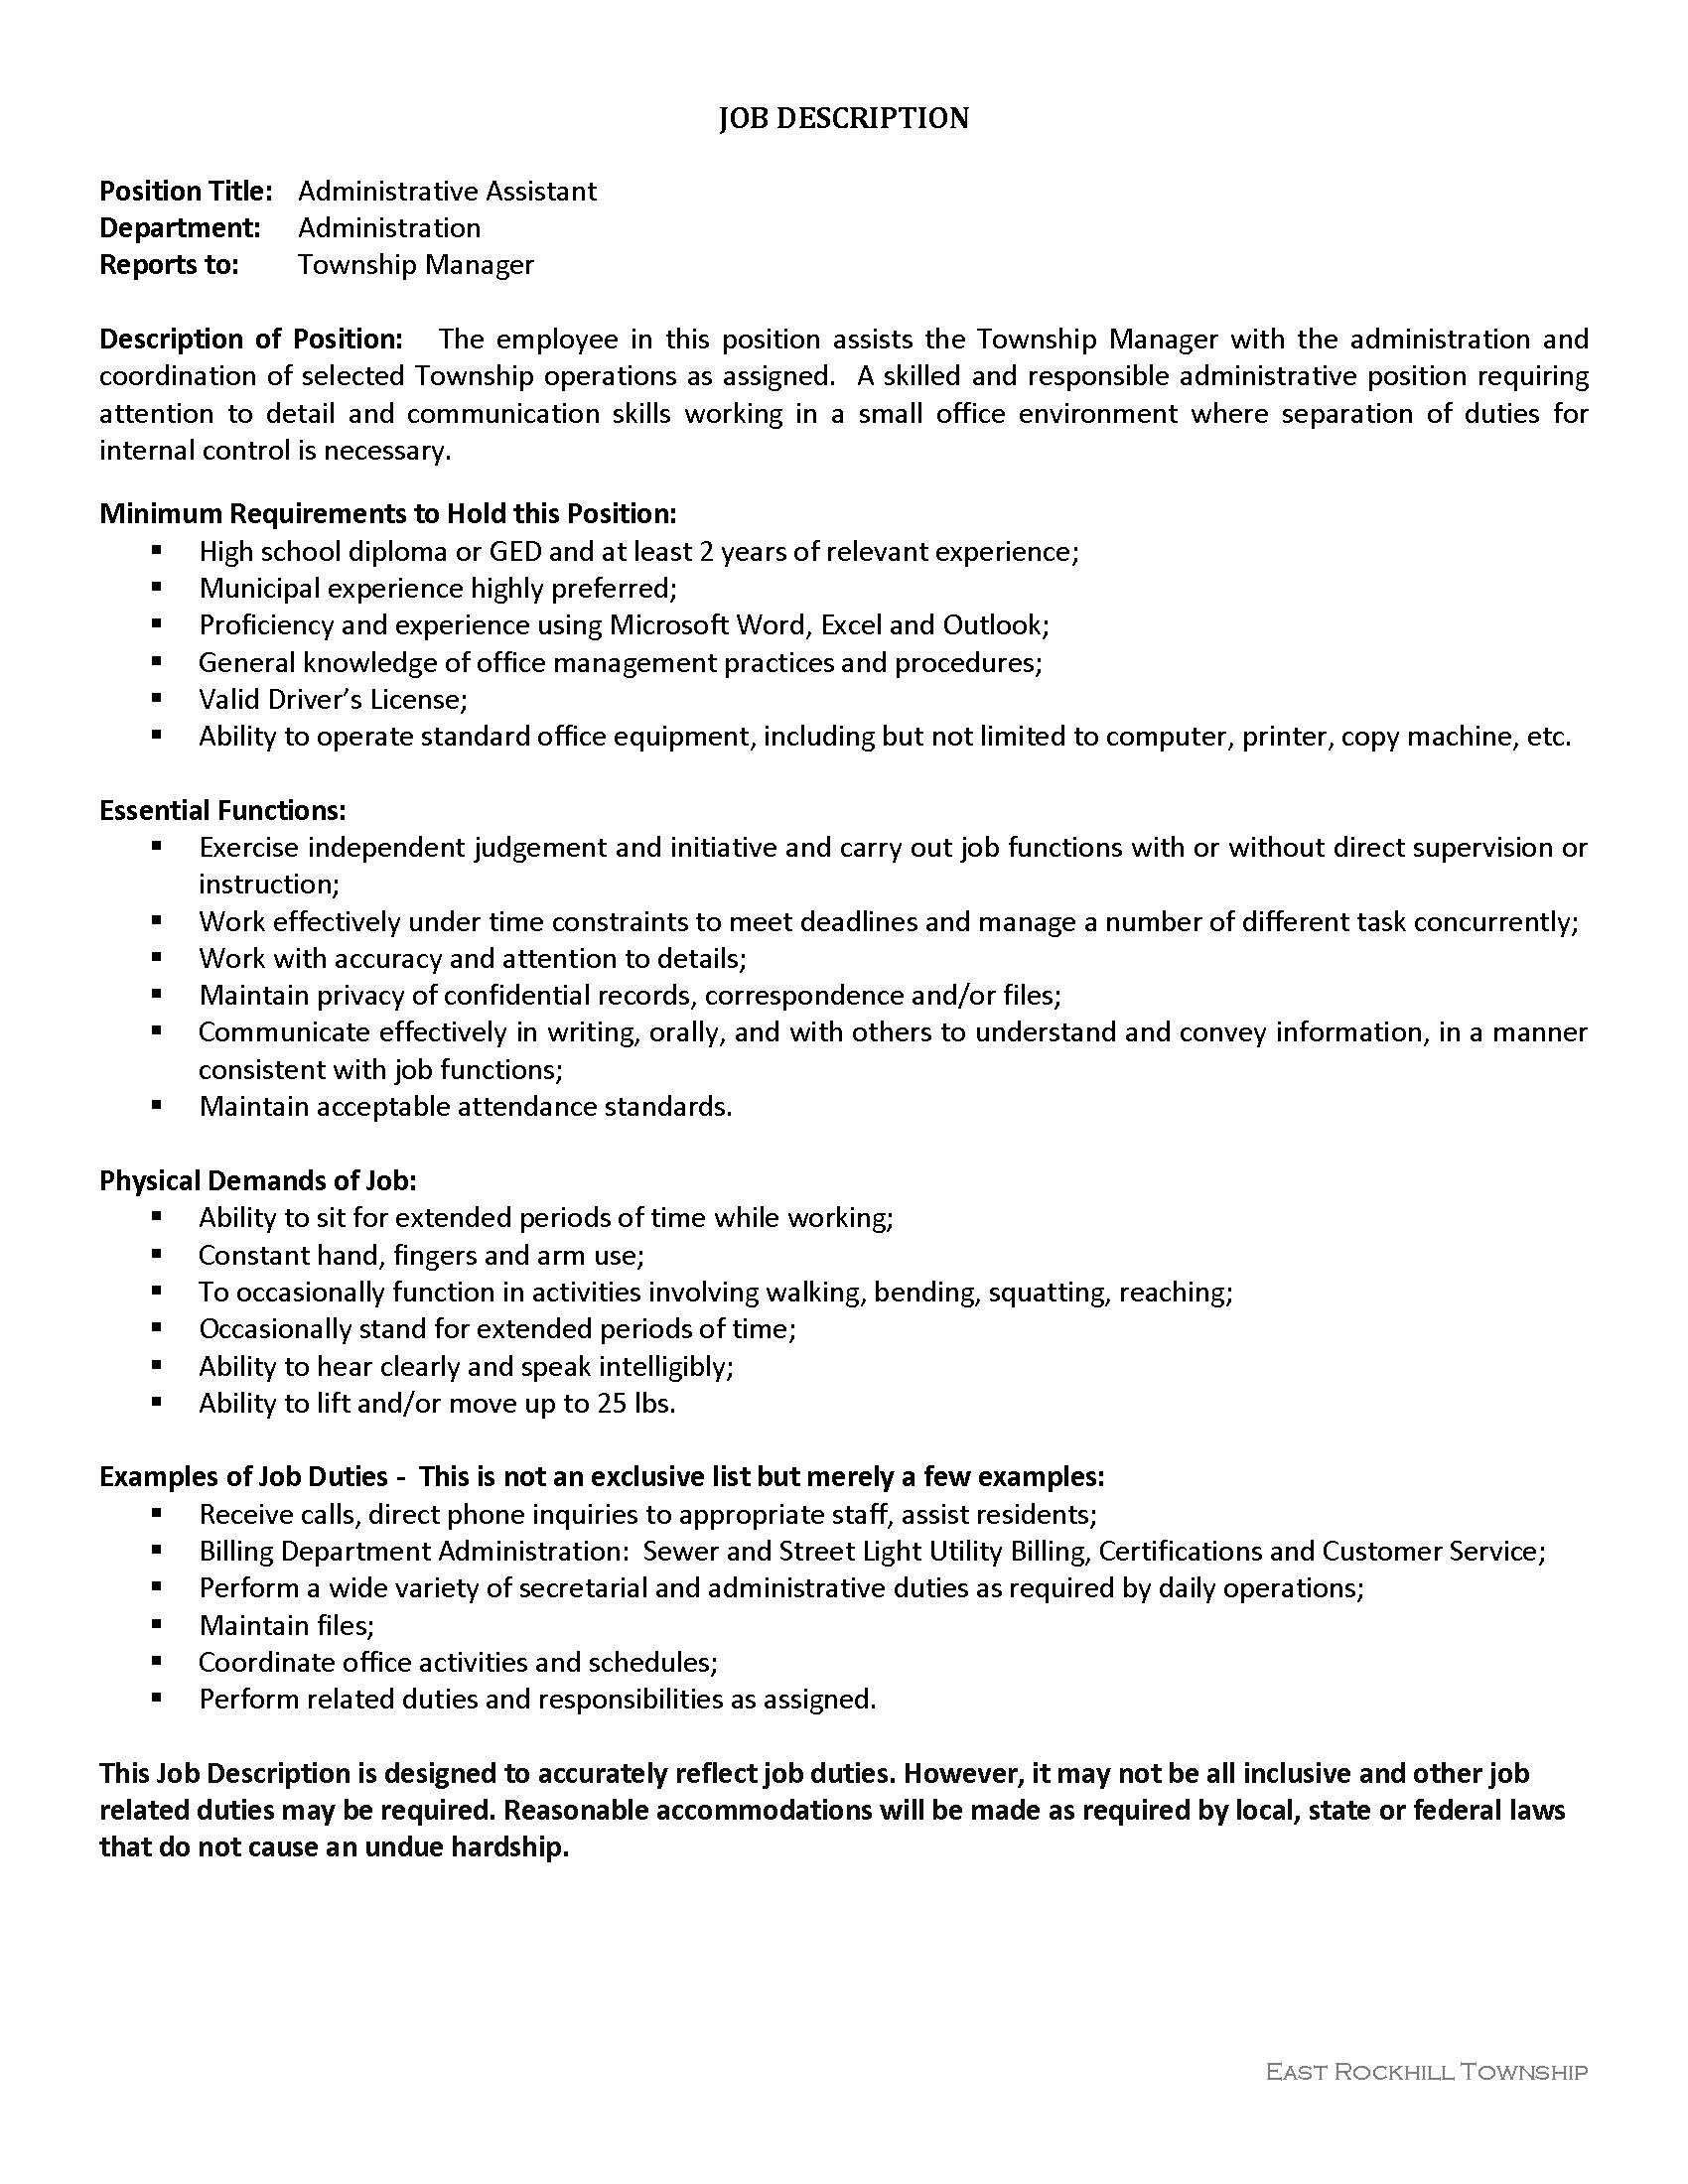 Administrative Assistant Job Opening – East Rockhill